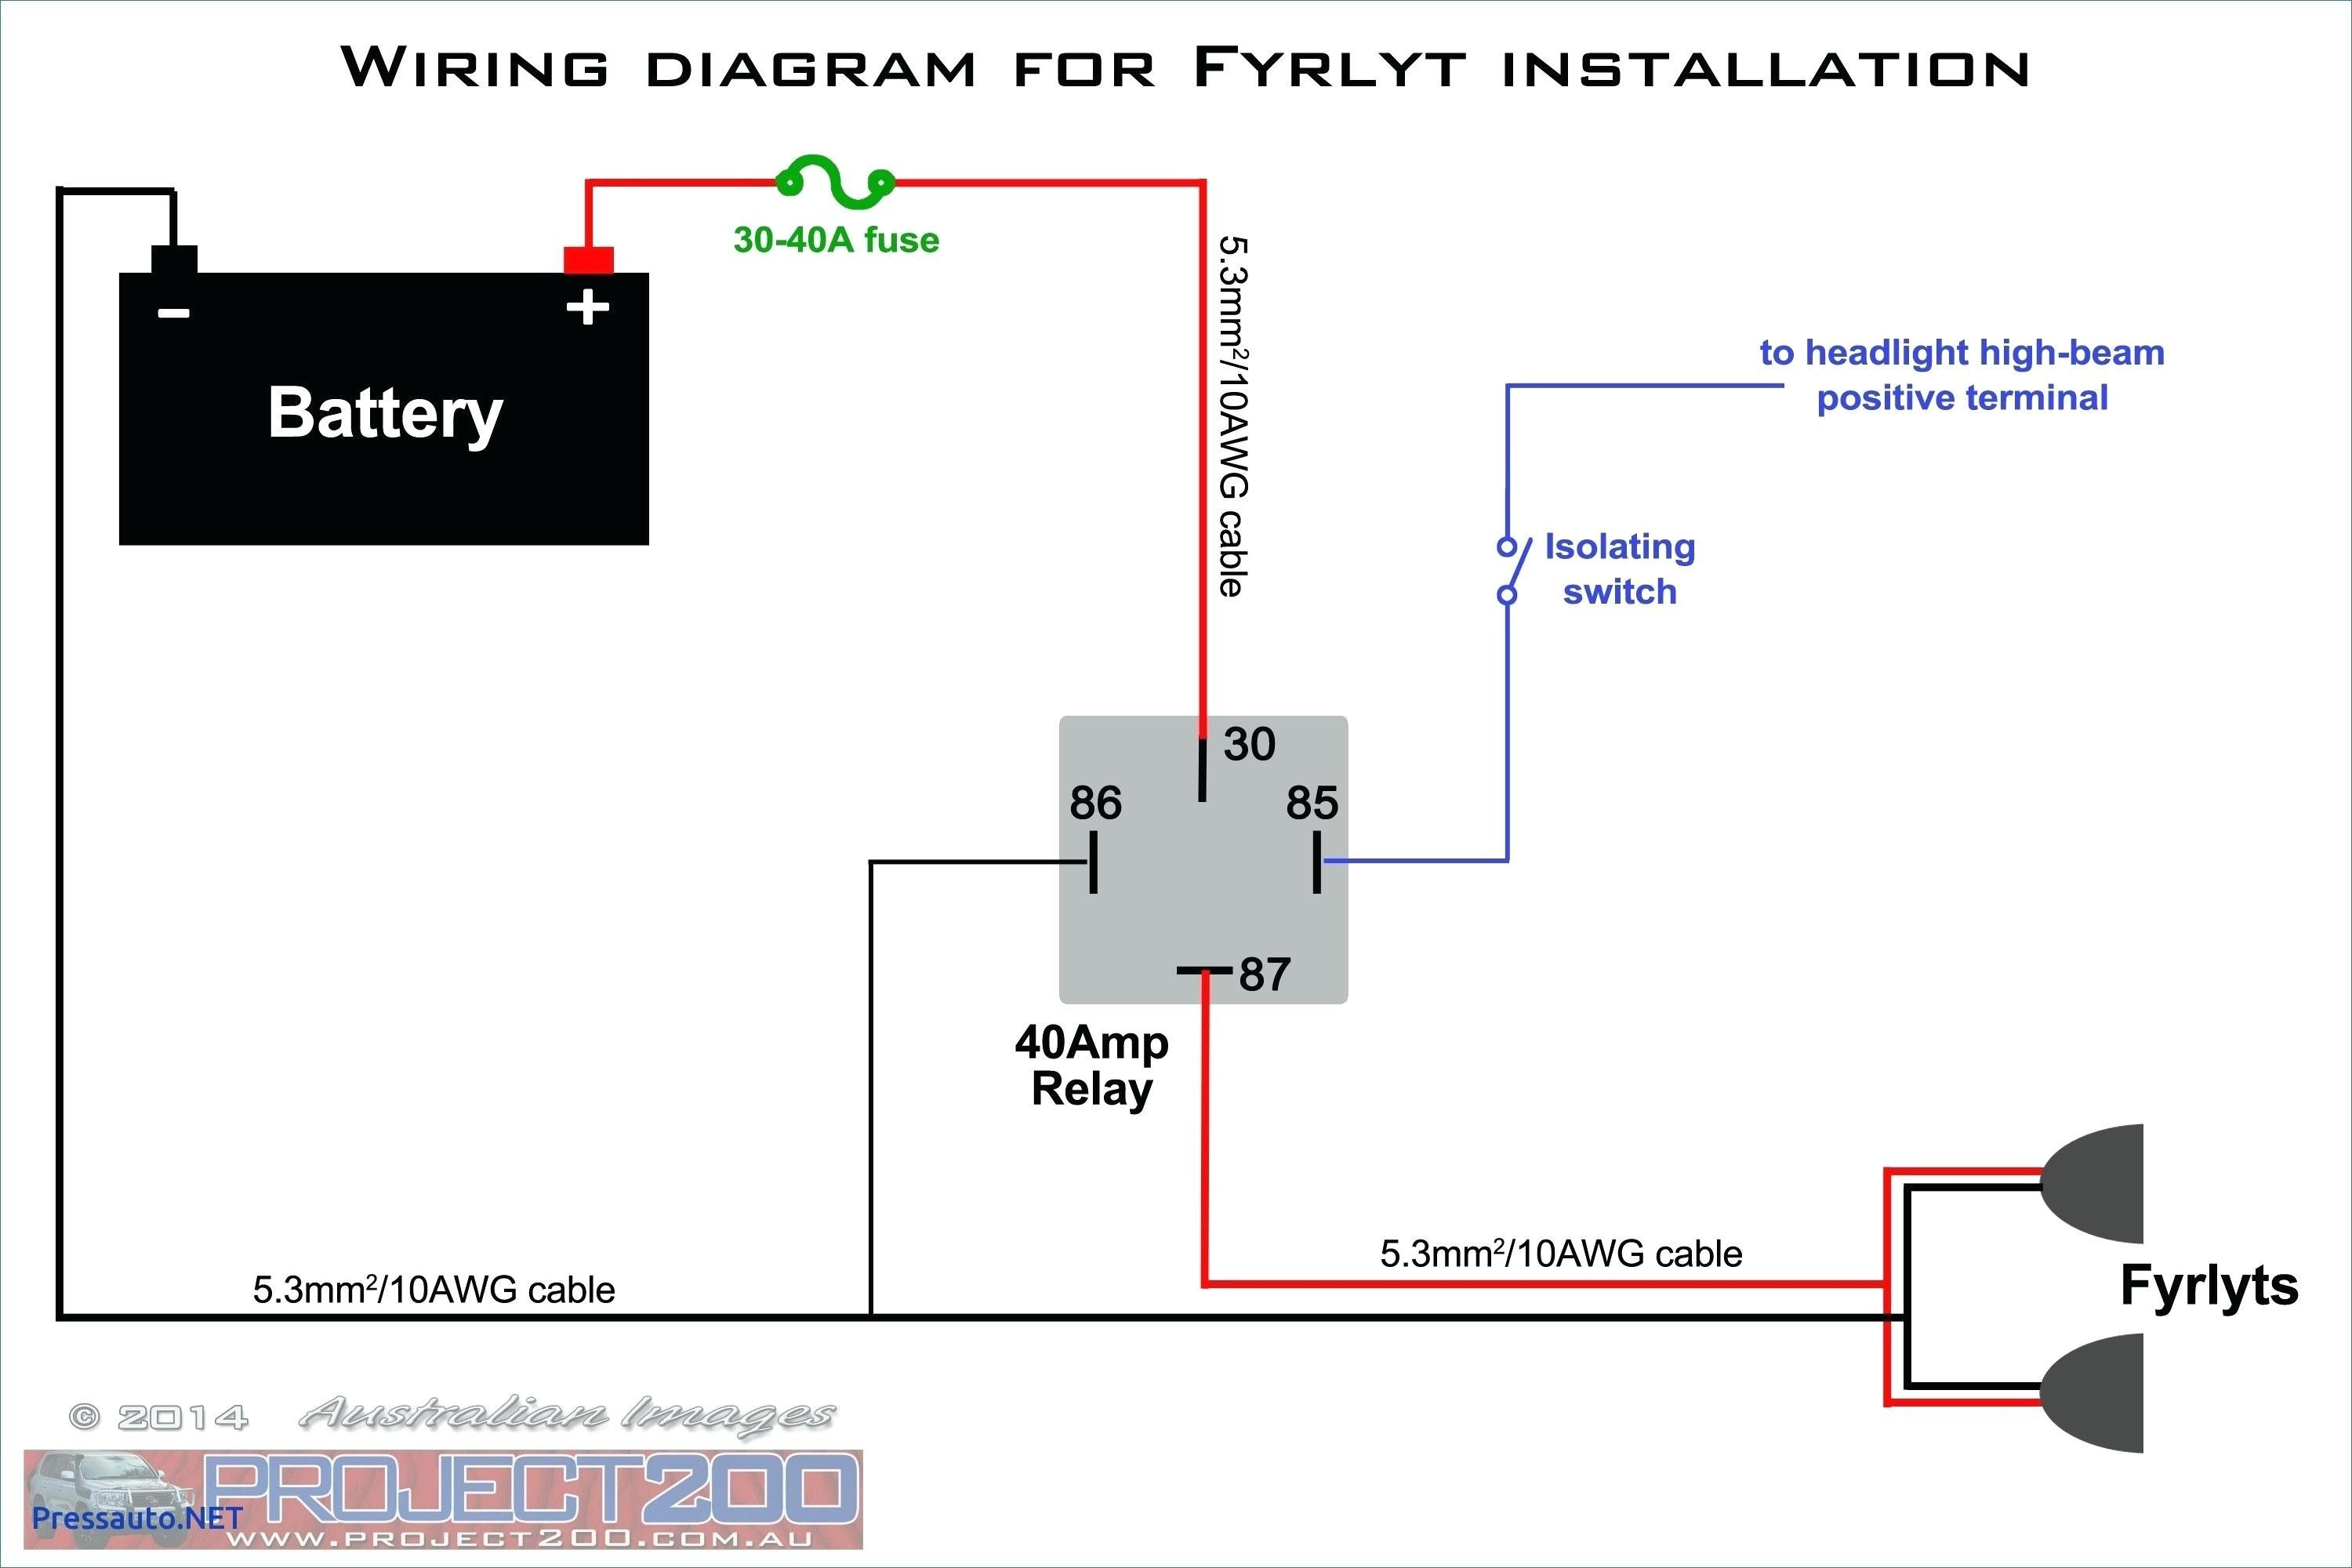 New Wiring Diagram For Rope Lights Diagrams Digramssample Diagramimages Wiringdiagramsample W Electrical Circuit Diagram Electrical Wiring Diagram Diagram